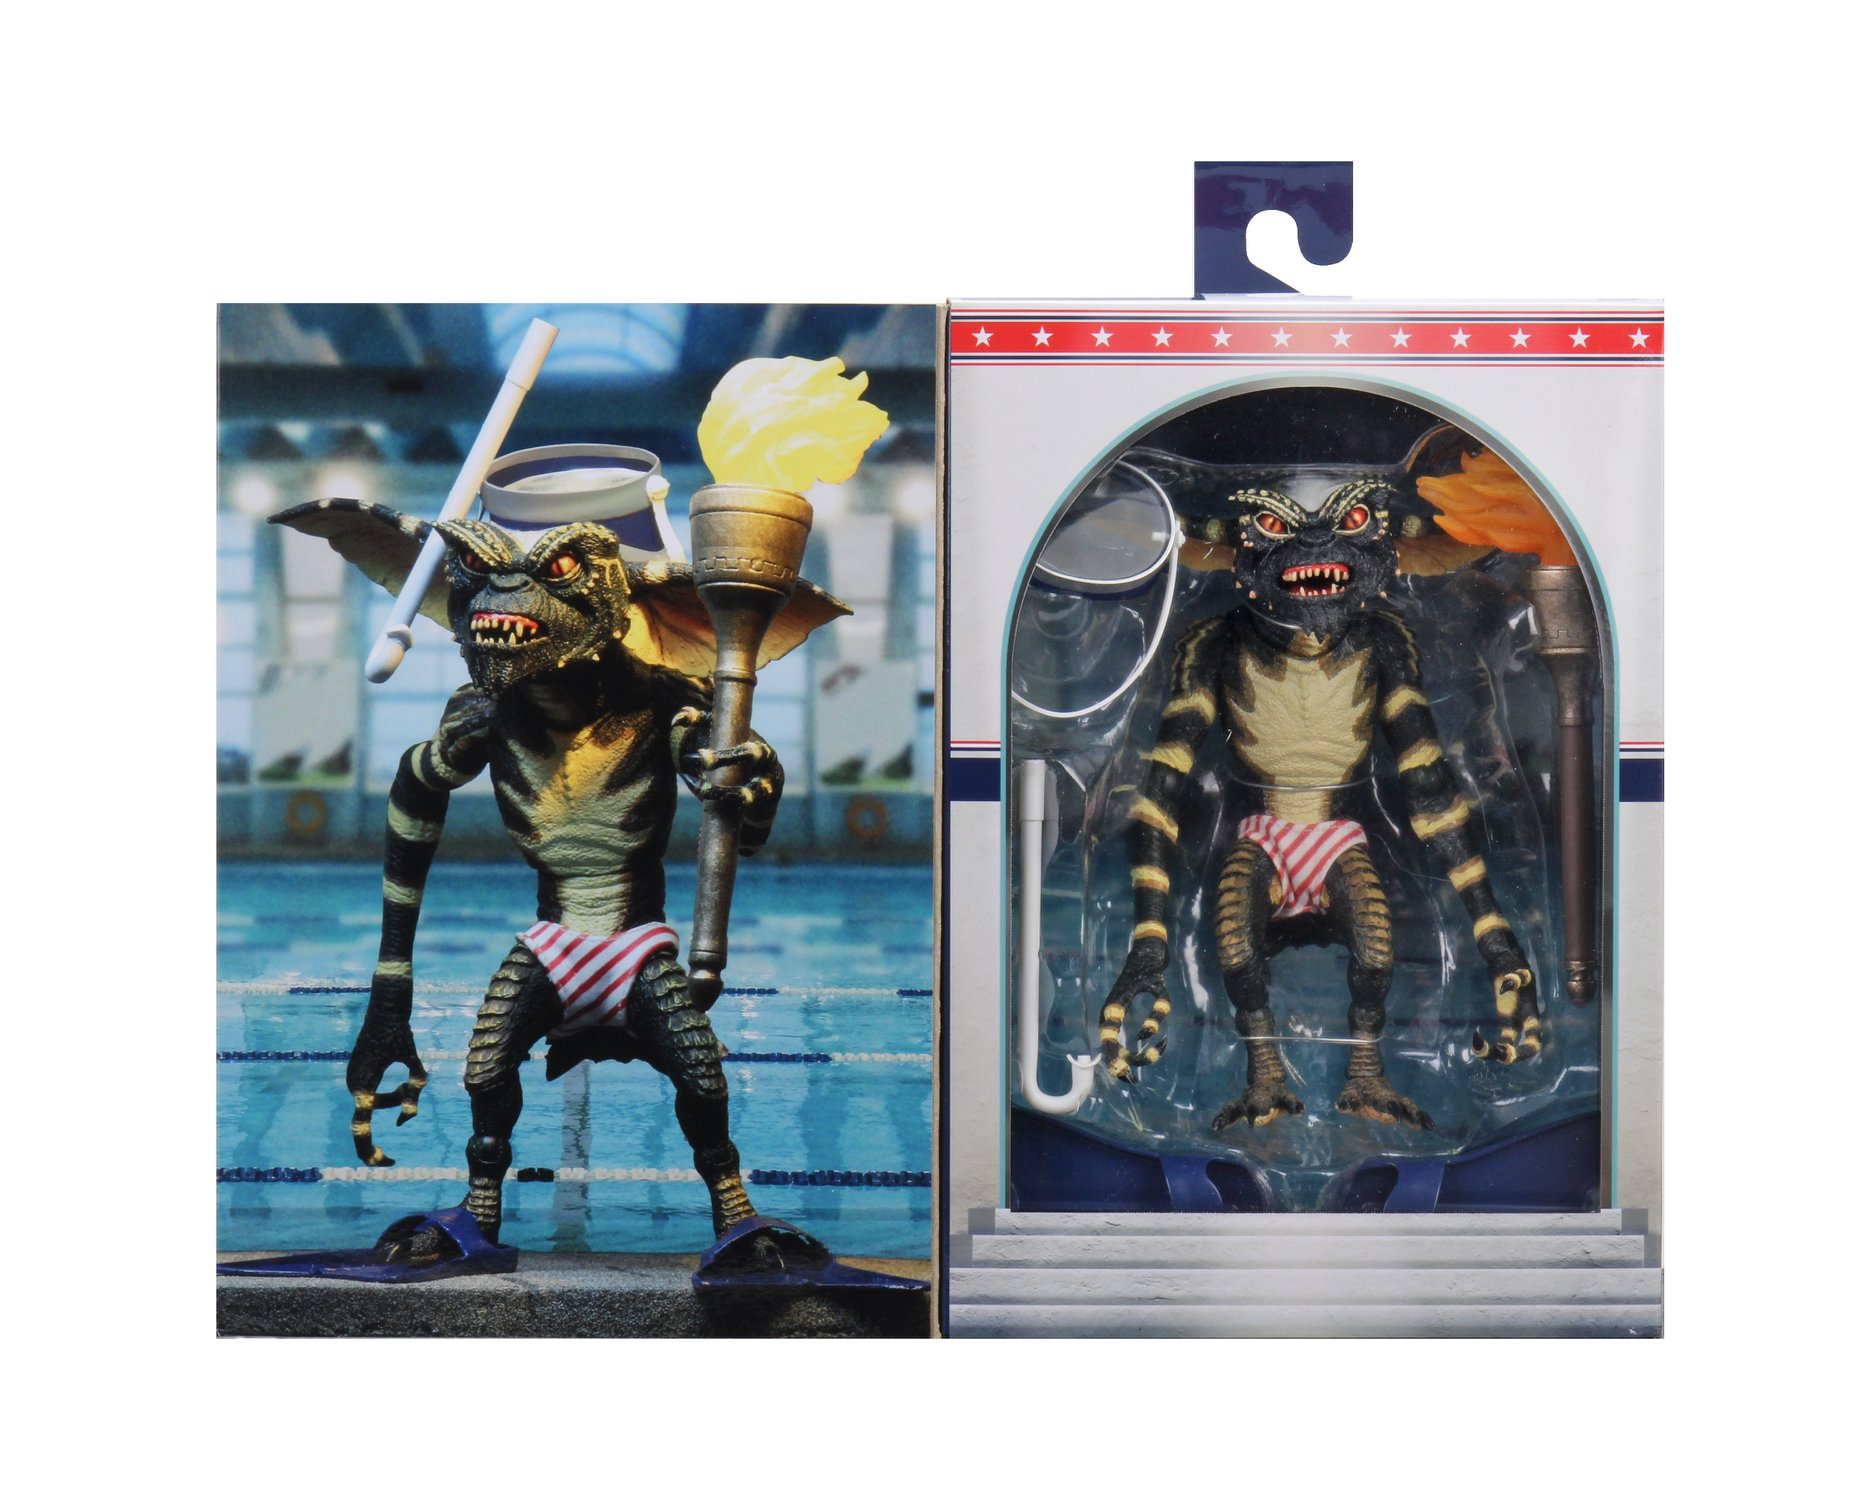 NECA Toys San Diego Comic-Con 2020 Exclusive – Ultimate Summer Games Gremlin Figure